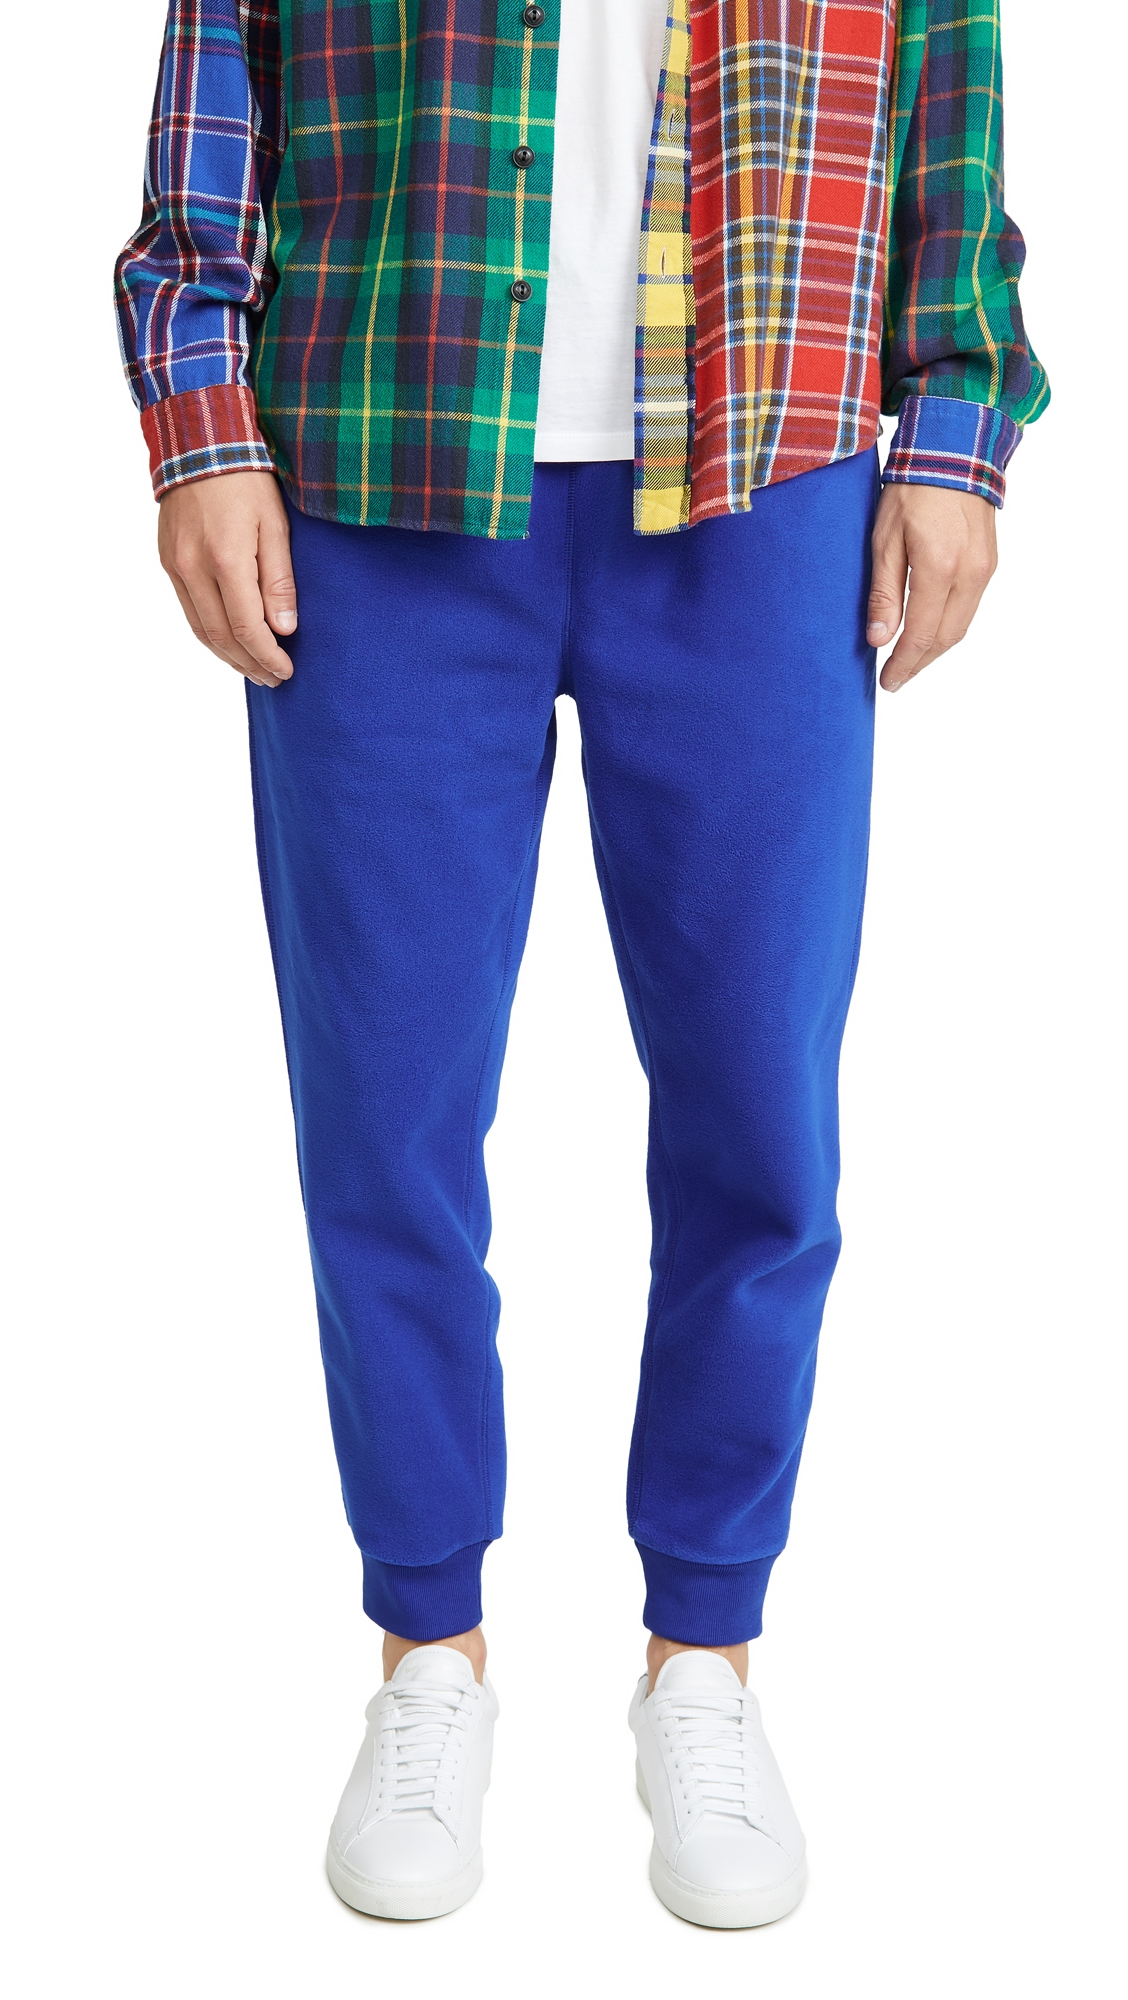 Polo Ralph Lauren Polar Fleece Sweatpants